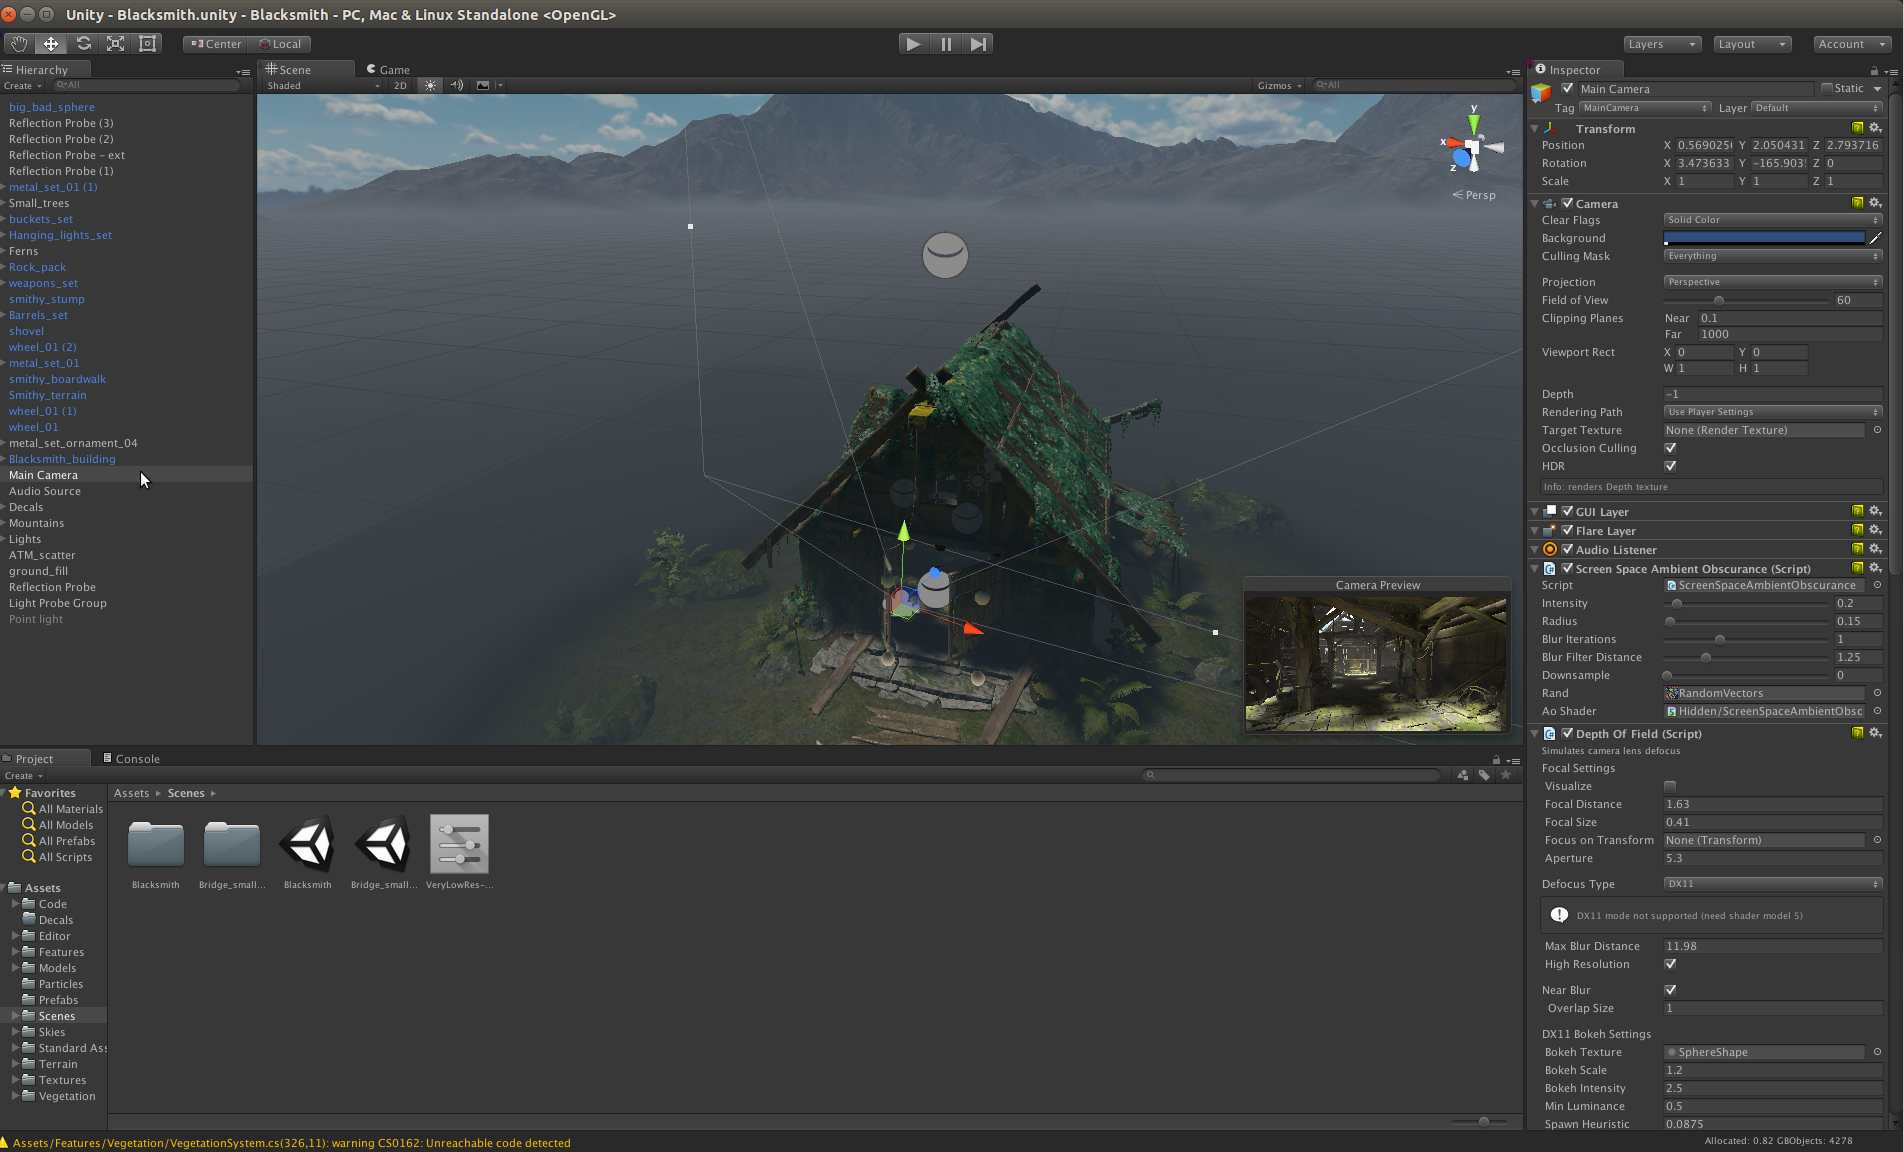 Download unity 3d for ubuntu | Unity 3D Games Editor Is Now